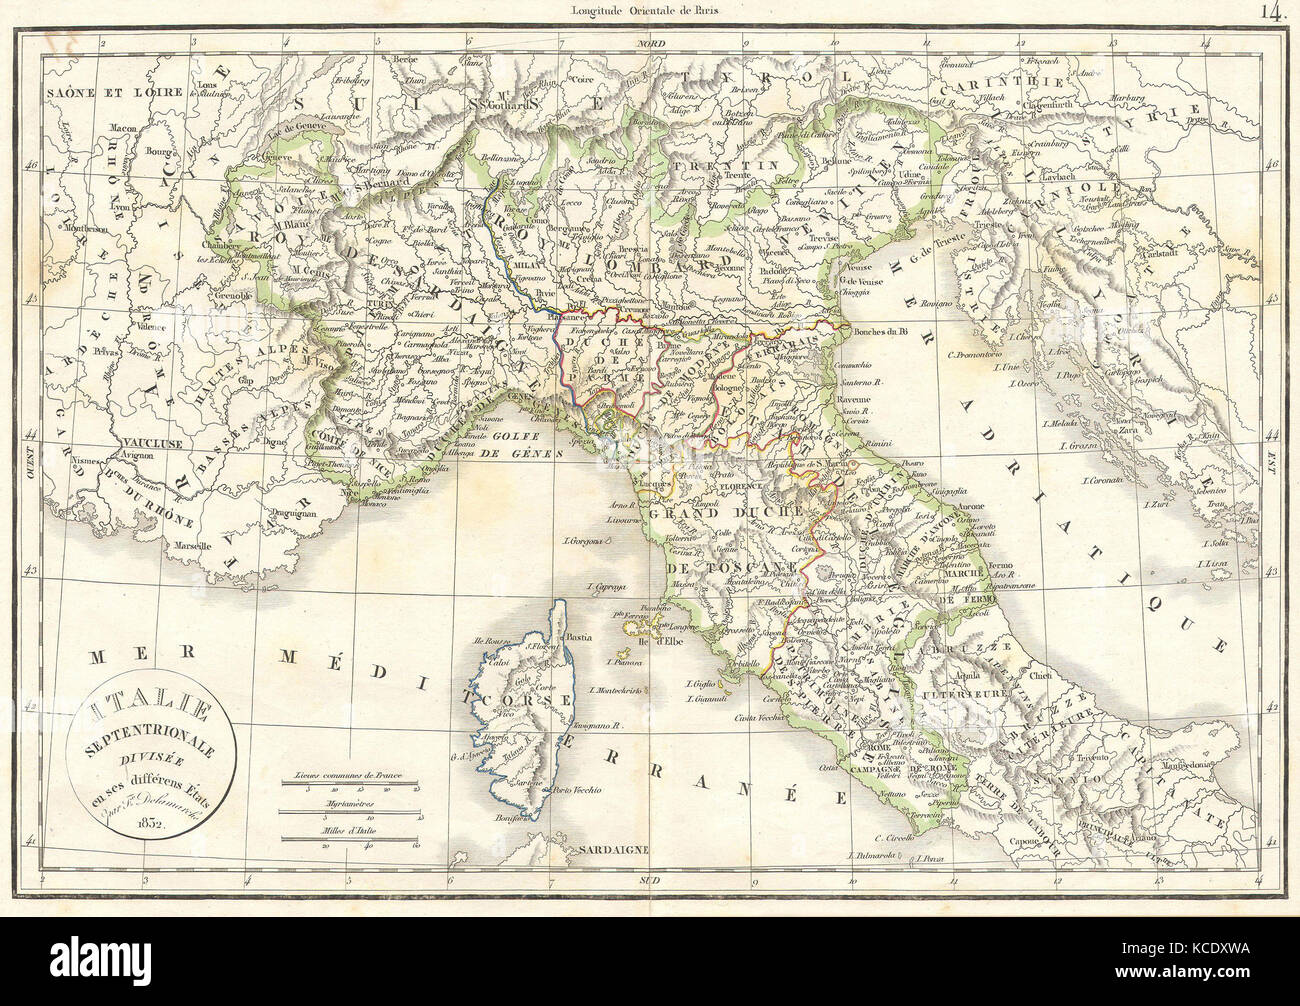 1832 Delamarche Map Of Northern Italy And Corsica Stock Photo